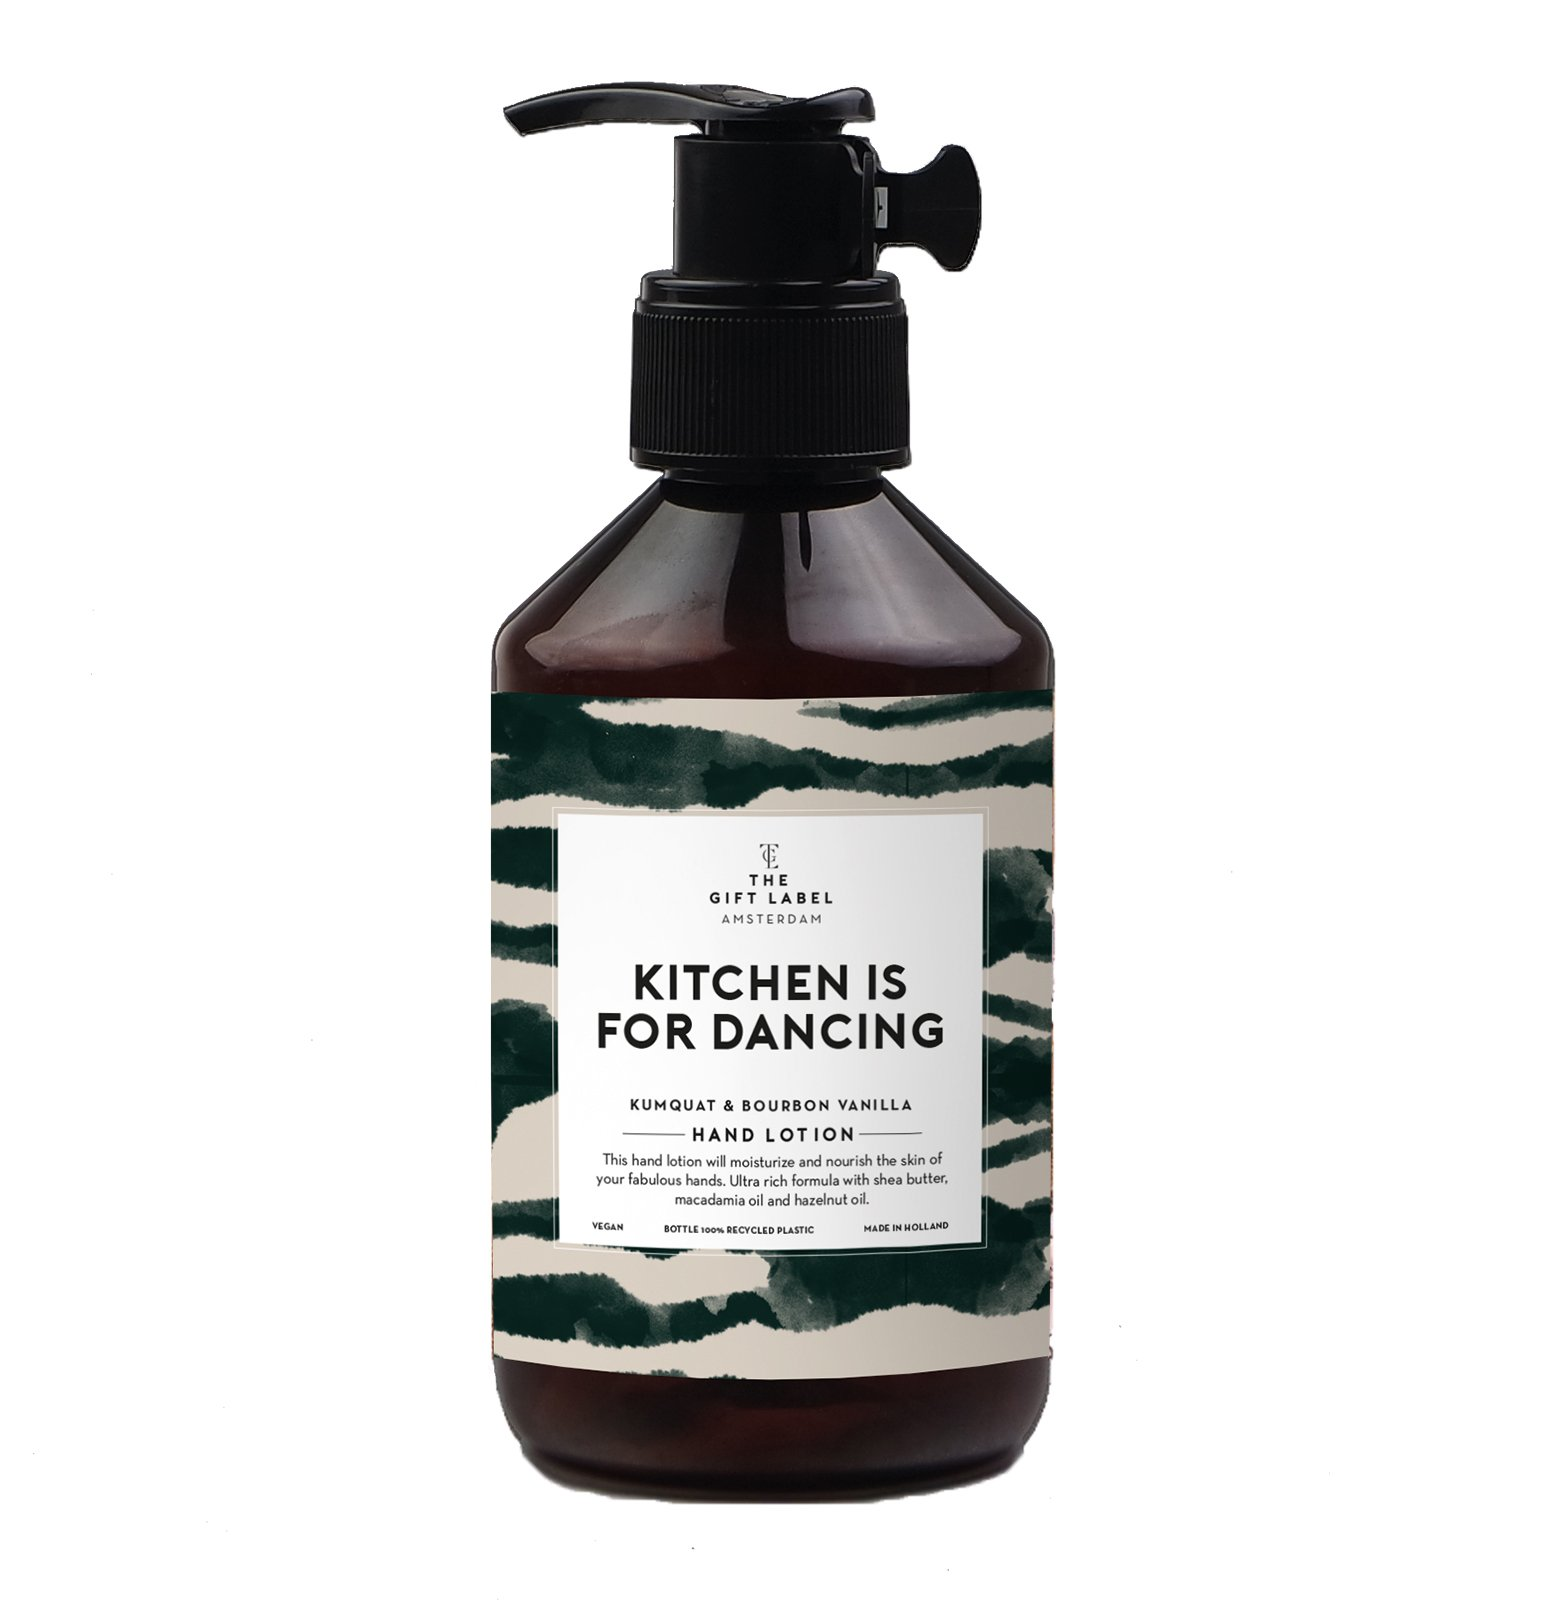 Kitchen is for dancing - Hand Lotion